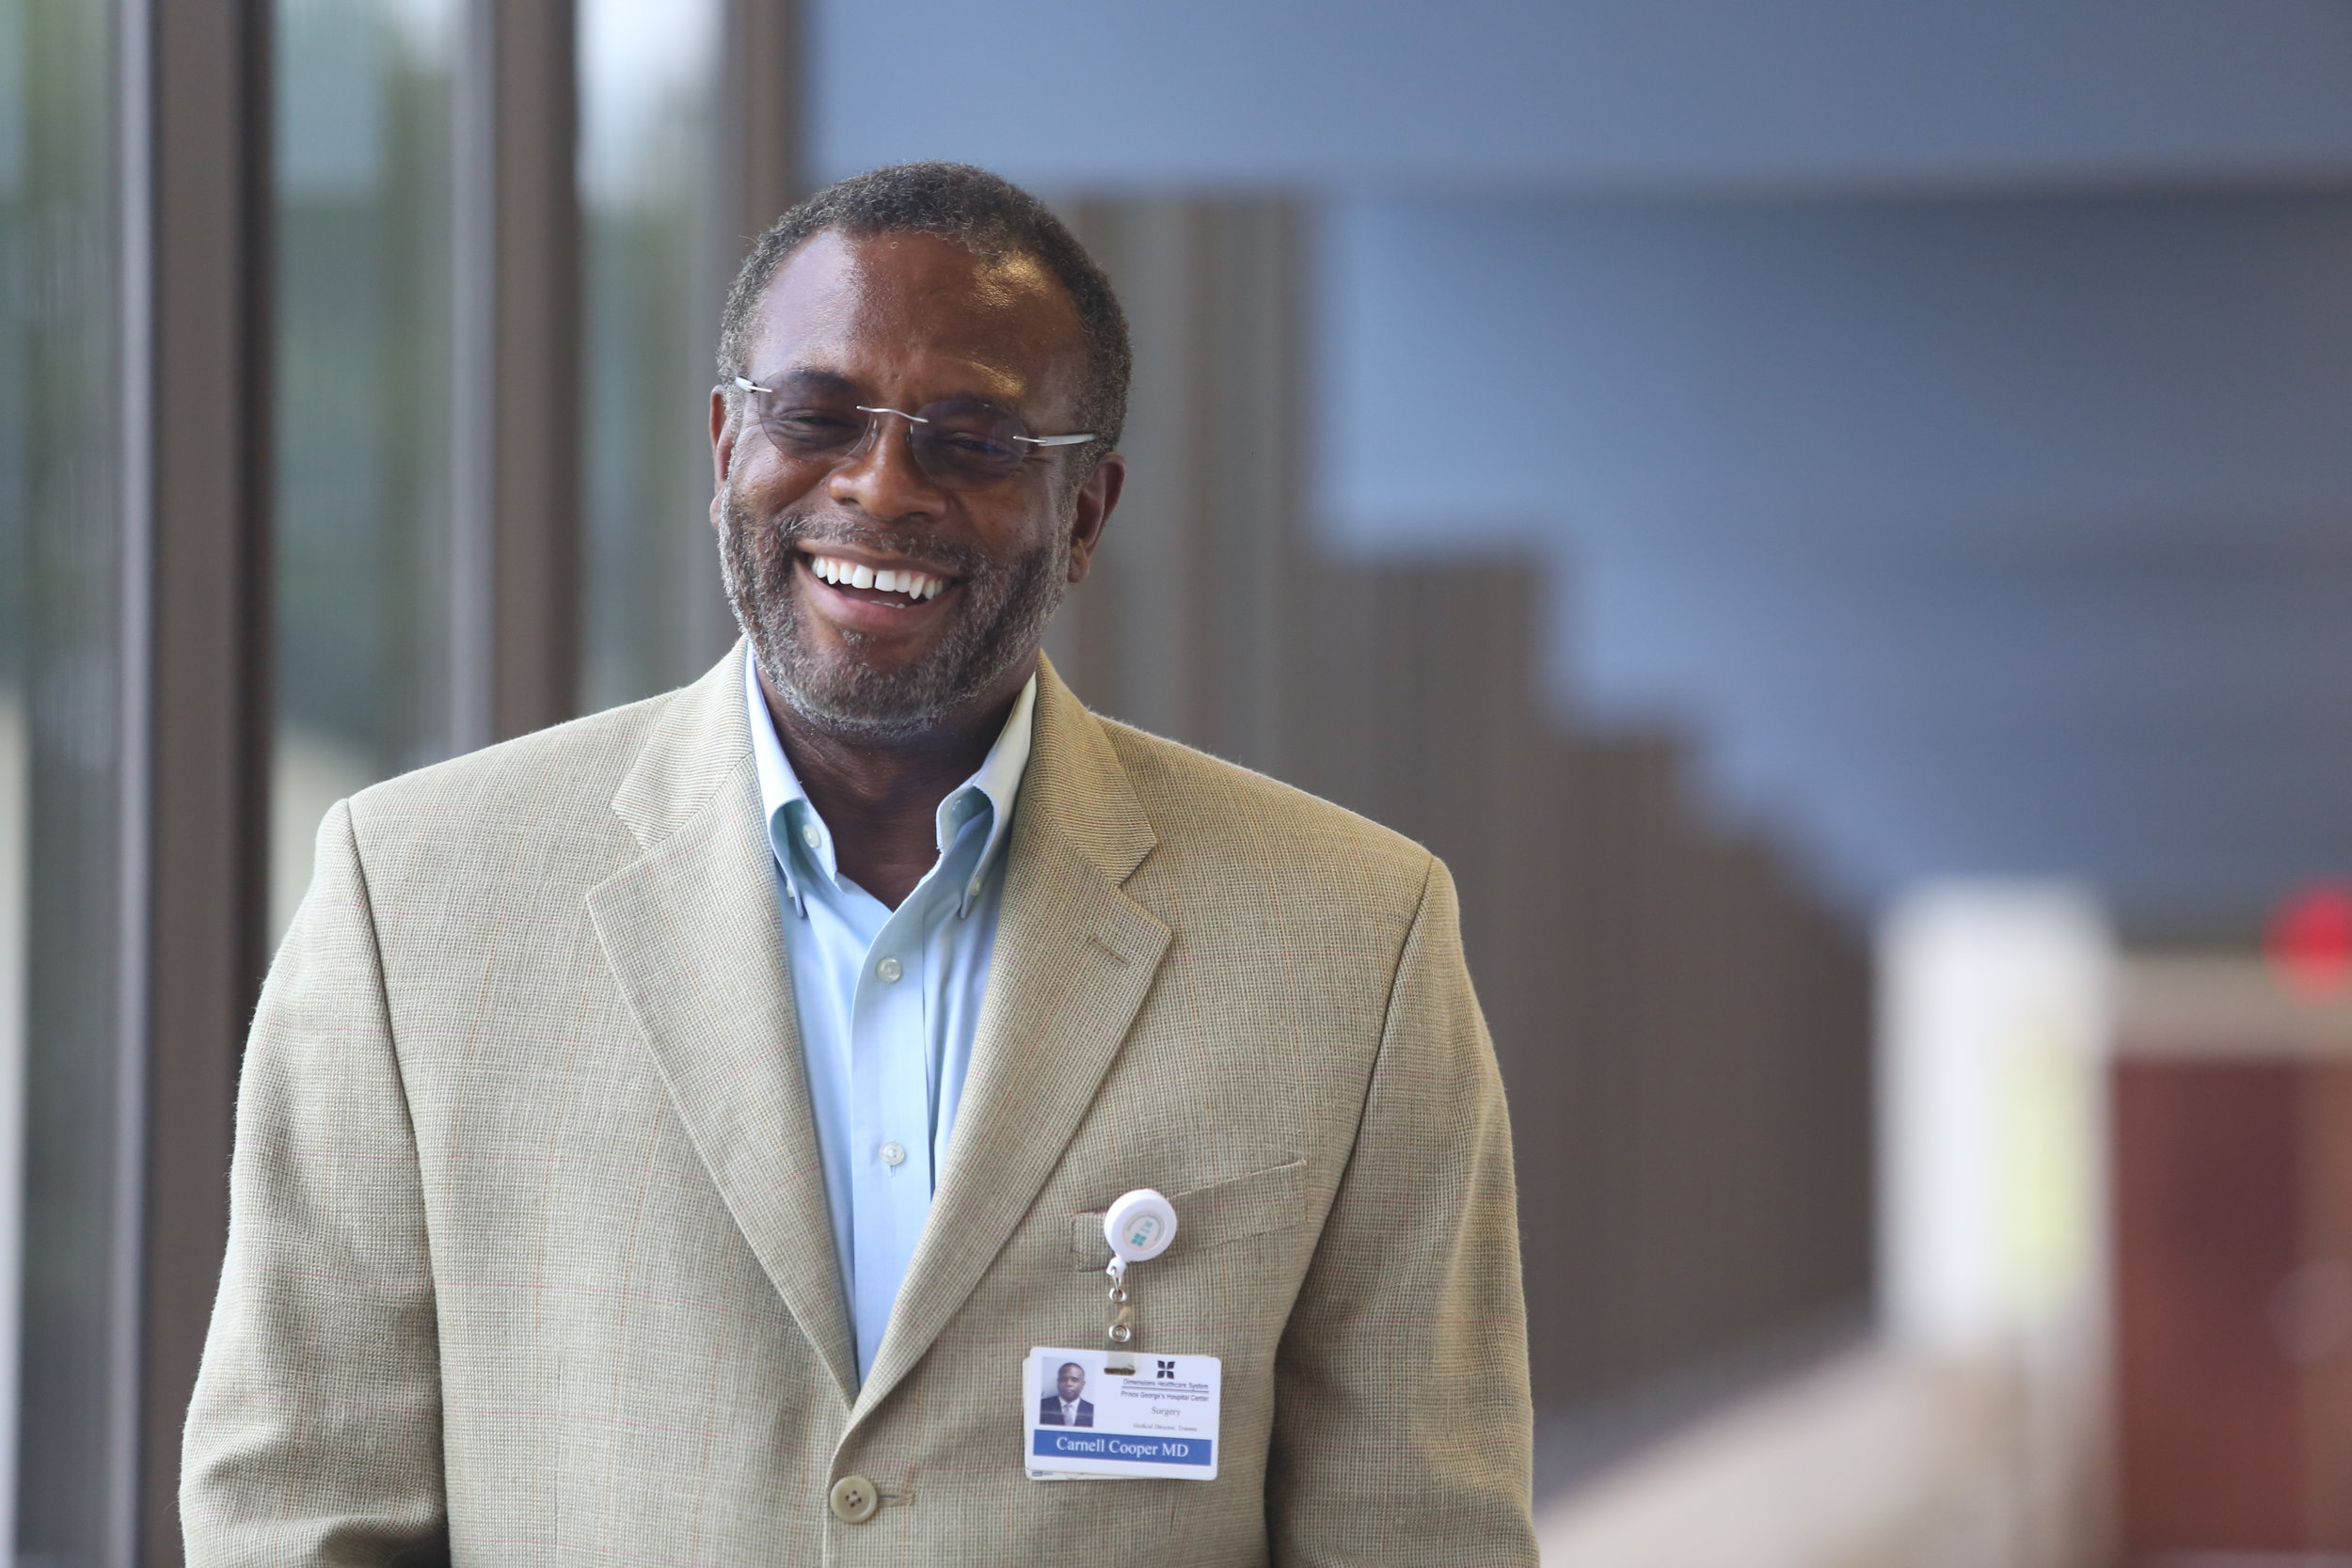 Carnell Cooper, MD. FACS